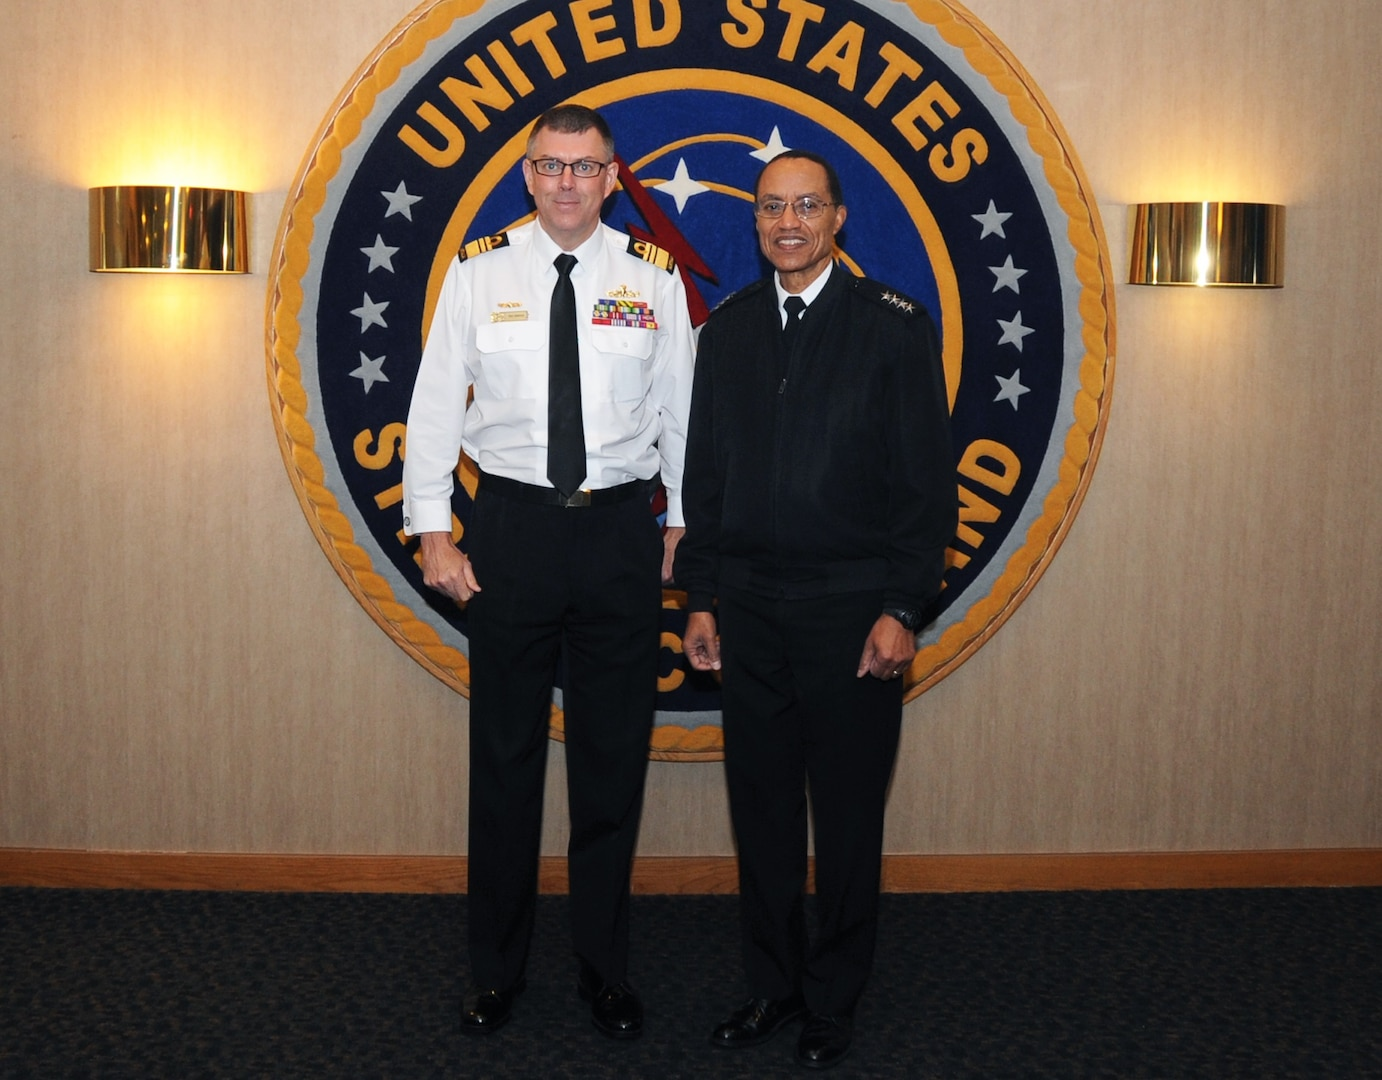 U.S. Navy Adm. Cecil D. Haney (right), U.S. Strategic Command (USSTRATCOM) commander, poses for a photo with Royal Australian Navy Vice Adm. Raymond J. Griggs, Vice Chief of the Australian Defence Force, during Griggs' visit to USSTRATCOM headquarters, Offutt Air Force Base, Neb., Nov. 30, 2015. While here, Griggs participated in a series of discussions with USSTRATCOM senior leaders to gain a better understanding of the command and its missions. Hosting Griggs' visit is one of many of USSTRATCOM's ongoing efforts to build and maintain enduring relationships with partner nations to confront the broad range of global challenges. One of nine DoD unified combatant commands, USSTRATCOM has global strategic missions, assigned through the Unified Command Plan, which include strategic deterrence; space operations; cyberspace operations; joint electronic warfare; missile defense; intelligence, surveillance and reconnaissance; combating weapons of mass destruction; and analysis and targeting. (USSTRATCOM photo by Steve Cunningham)